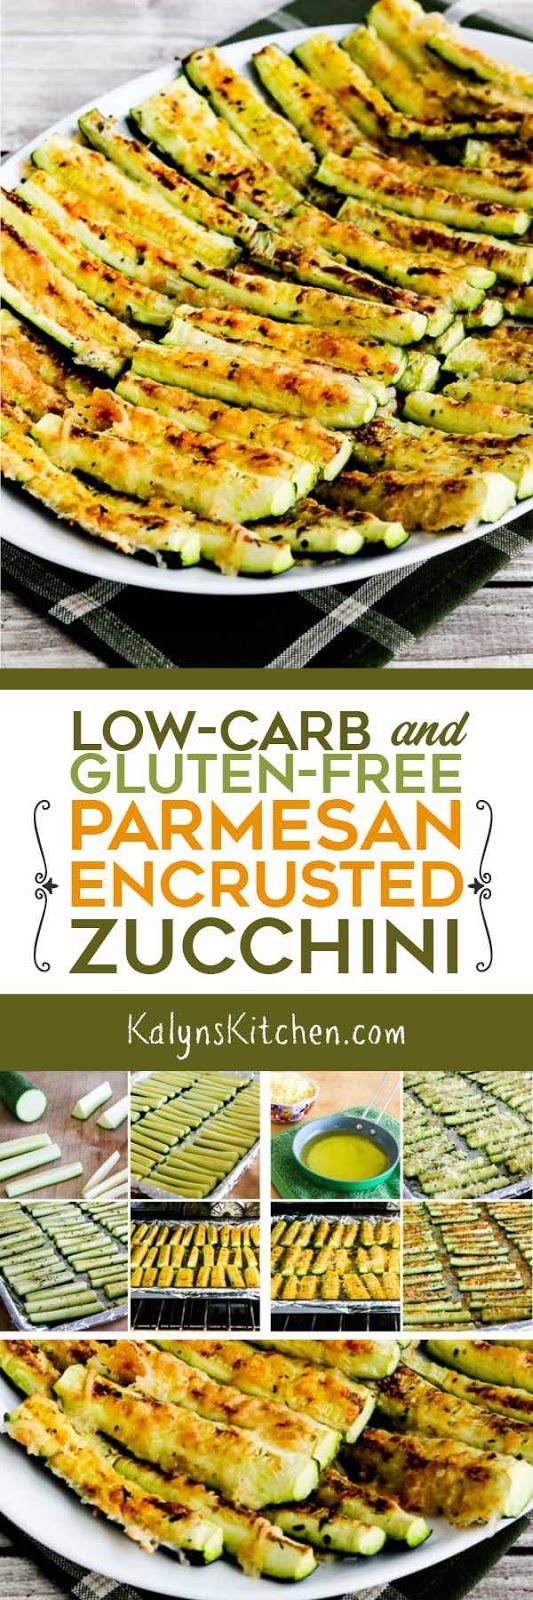 Low-Carb and Gluten-Free Parmesan Encrusted Zucchini ...